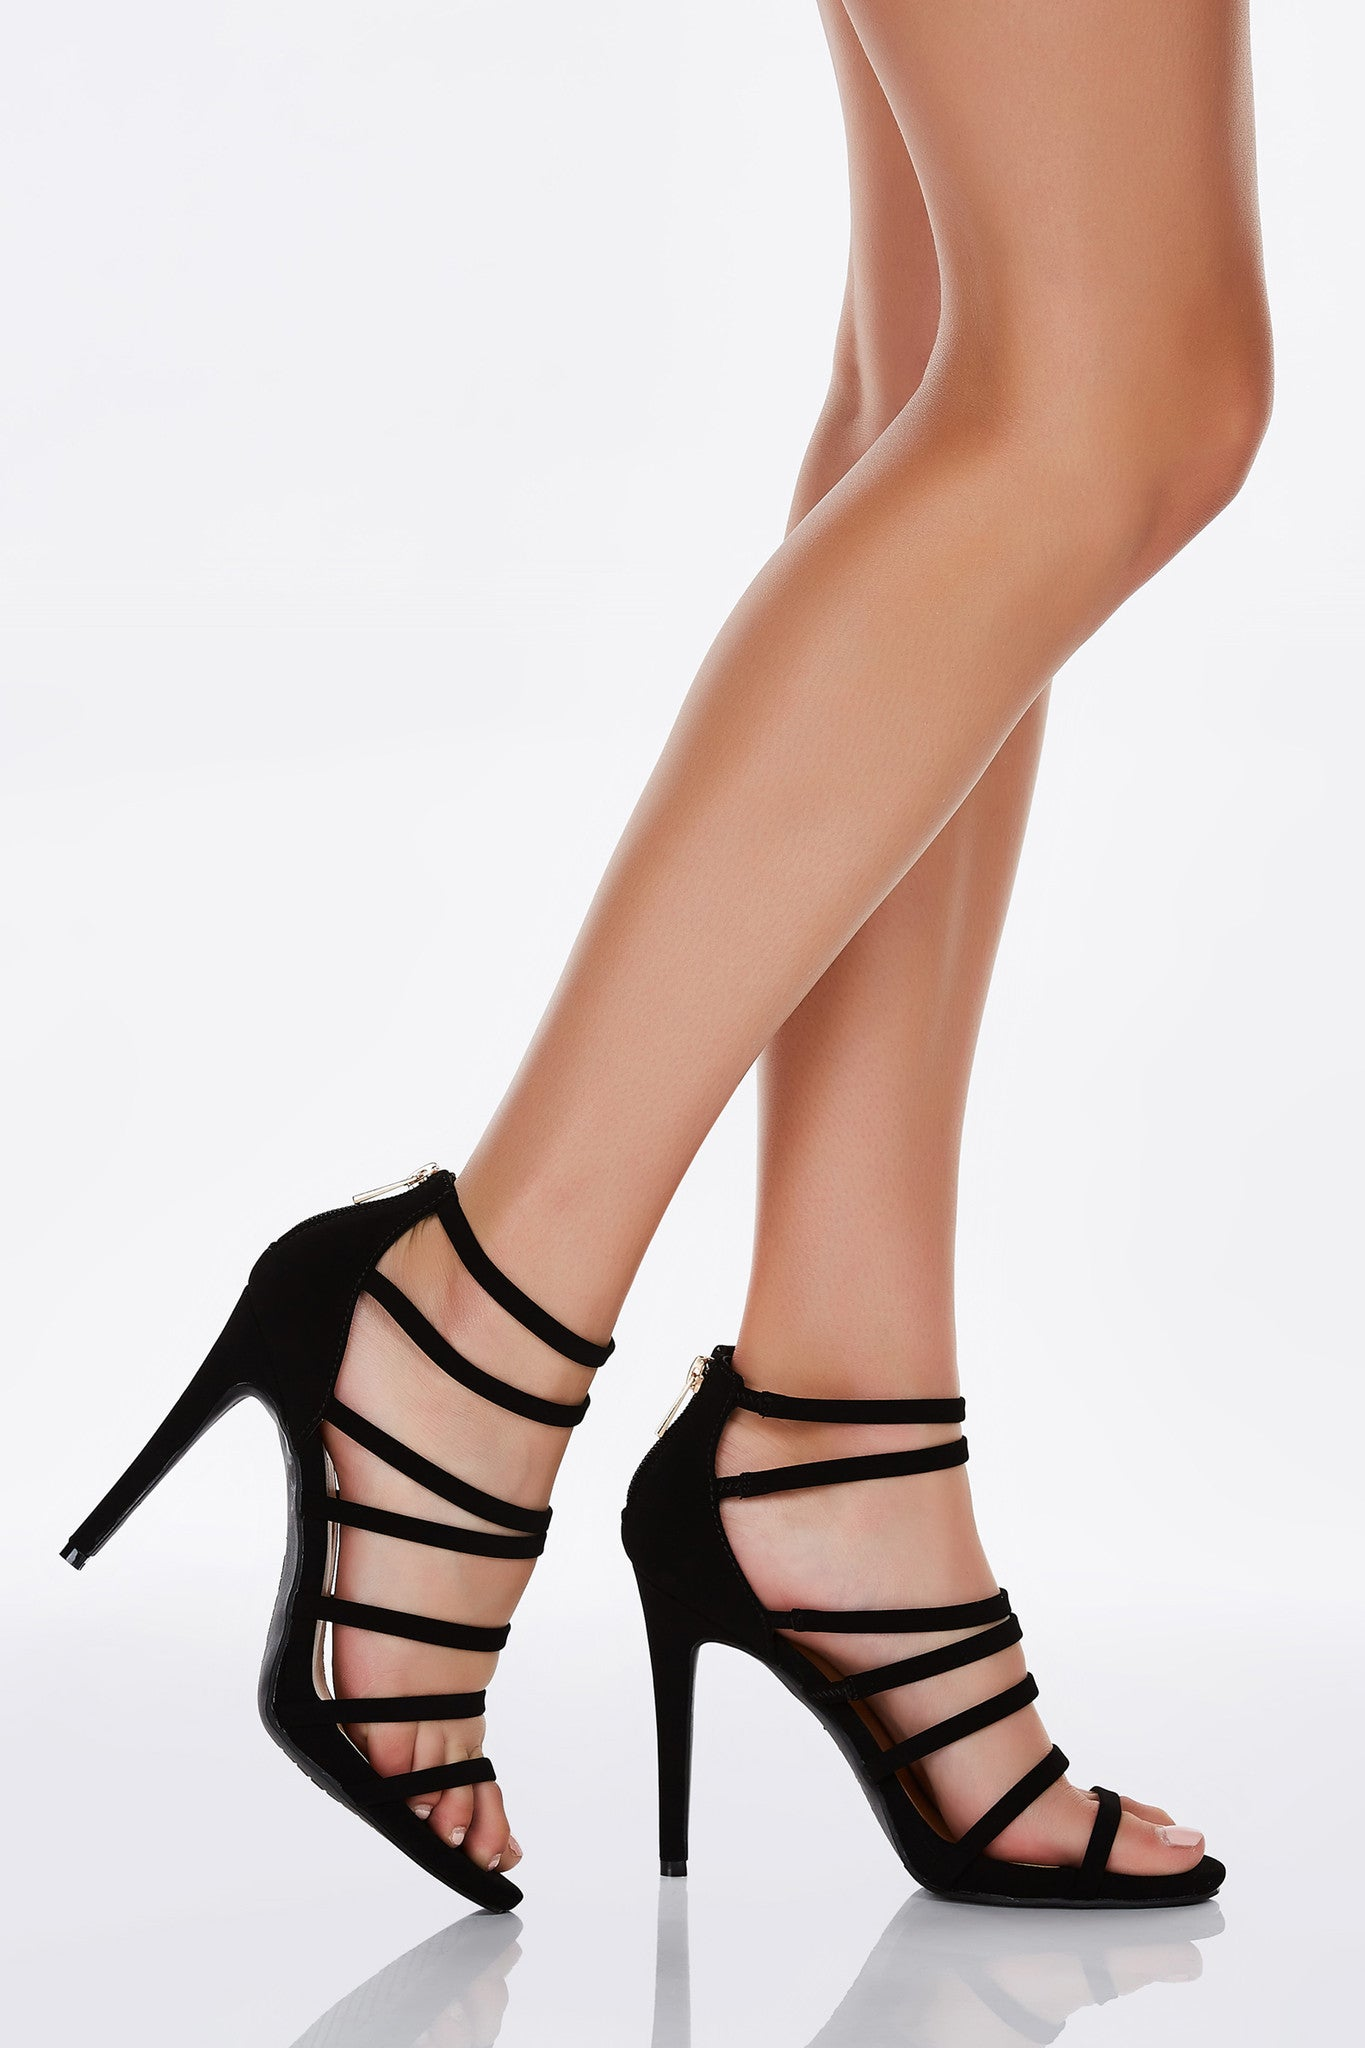 A stunning pair of heels with sexy multi strap detailing. Smooth, chic exterior with a single zip back closure. Tiny elastic bands by ankle for comfortable steppin'!